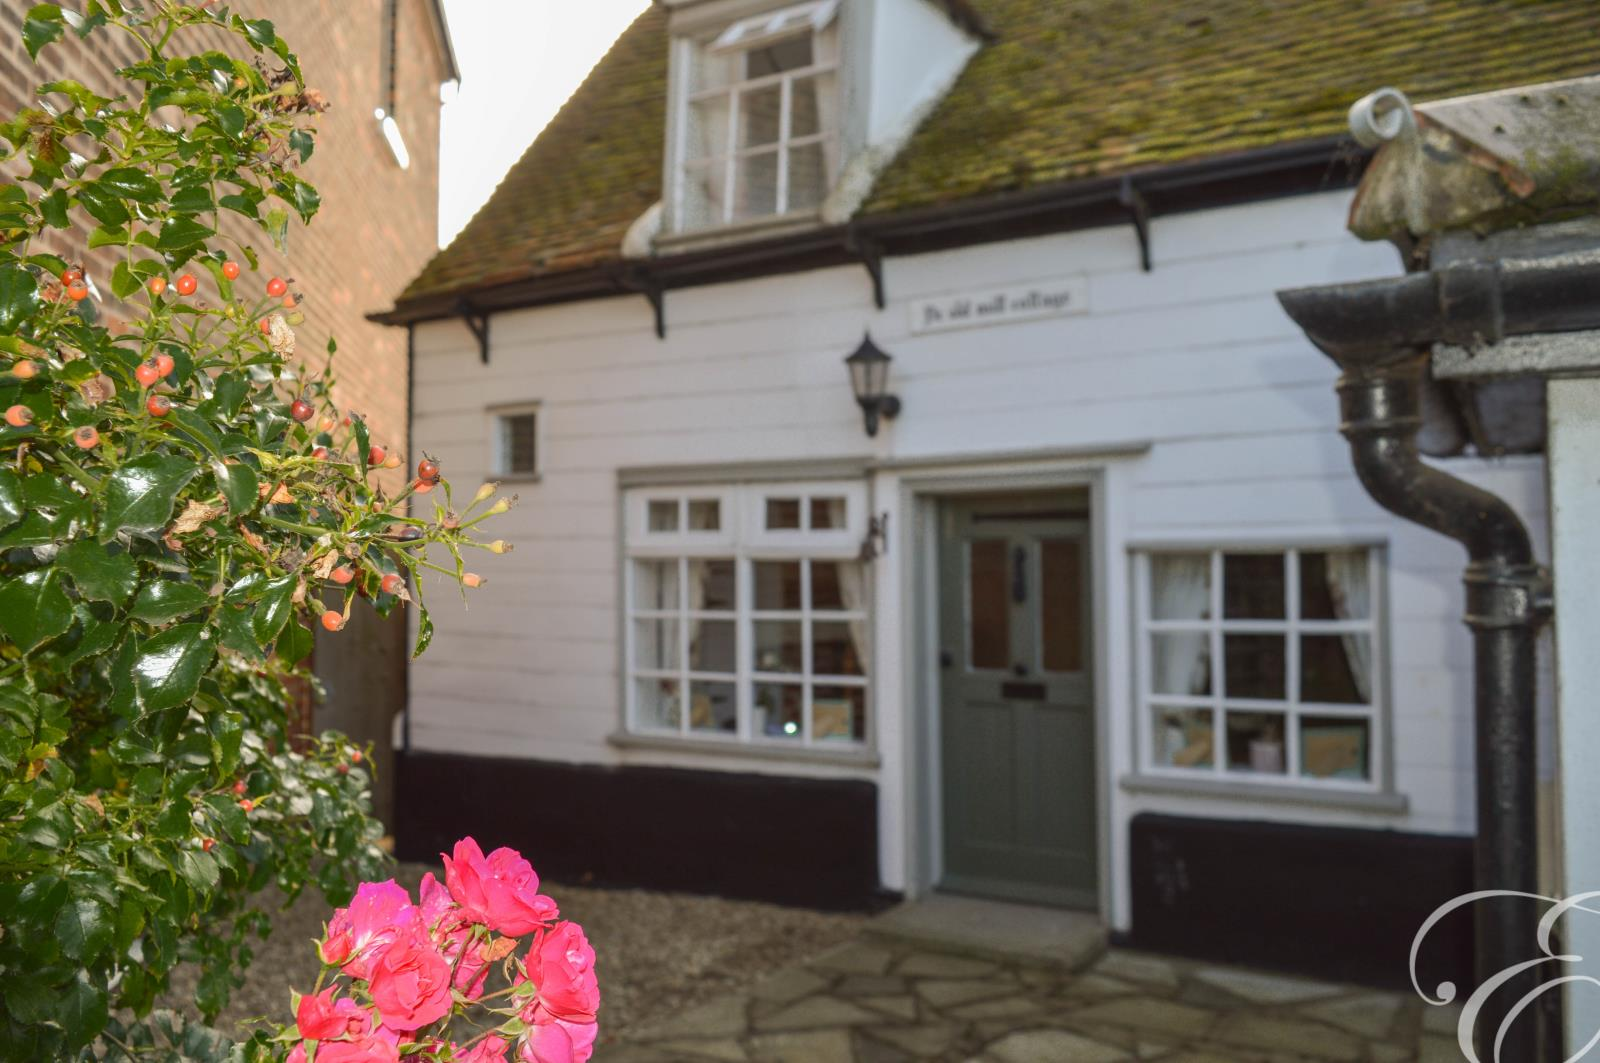 2 bed semi-detached house to rent in Mistley, Manningtree, Essex, CO11